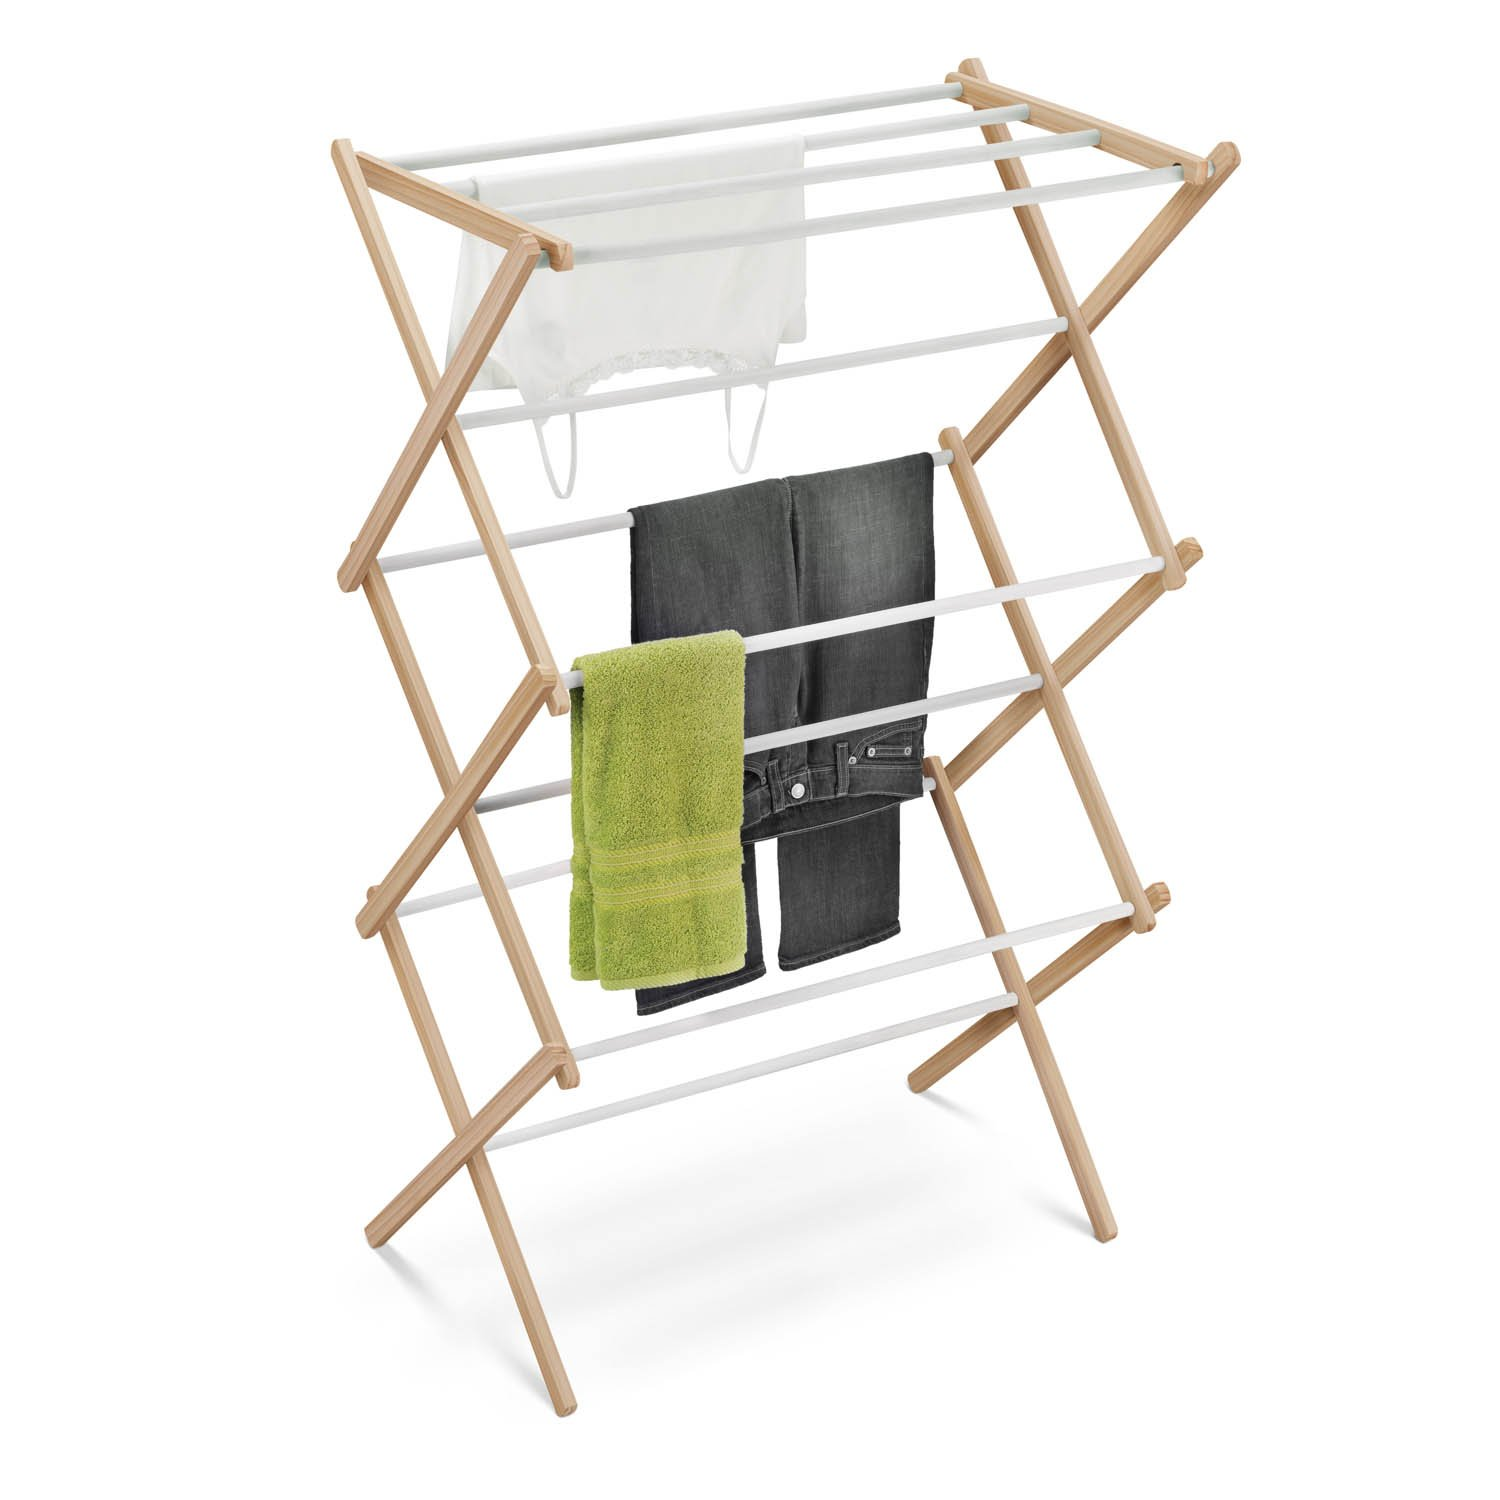 Image: Honey-Can-Do Wooden Clothes Drying Rack | Collapsible drying rack for air-drying clothes and saving electricity consumption